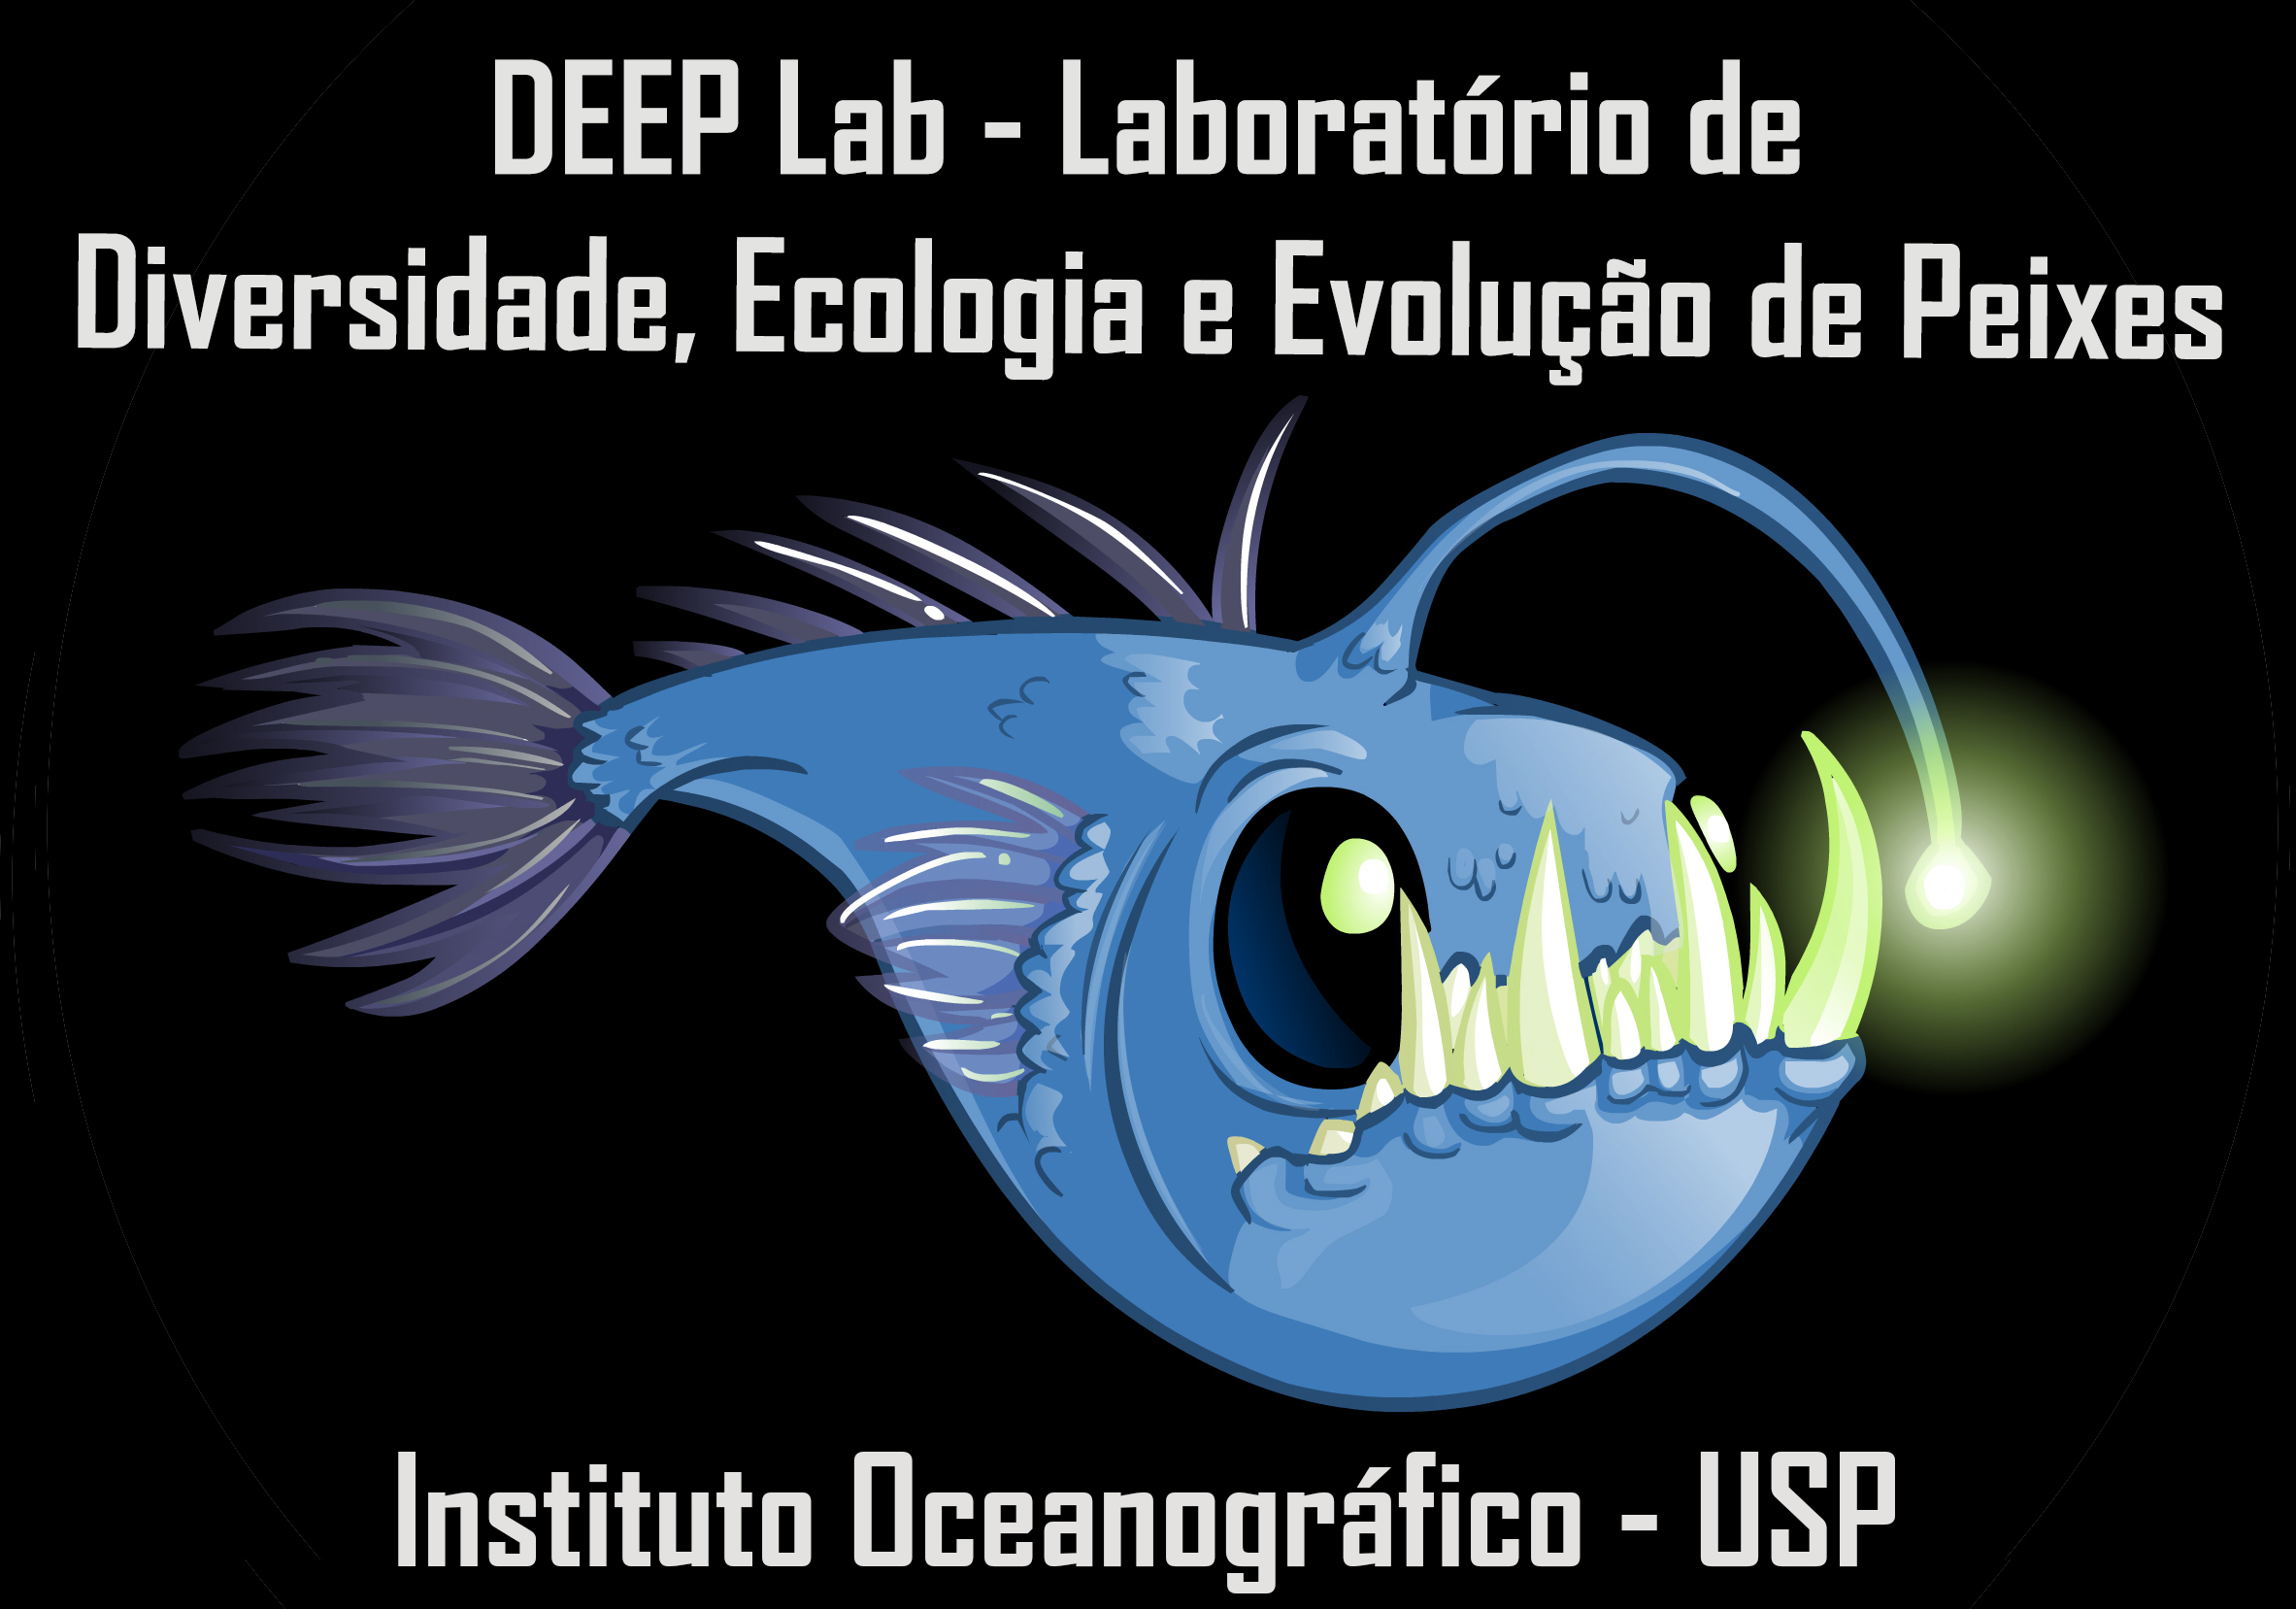 Logo DEEP LAB2.jpg